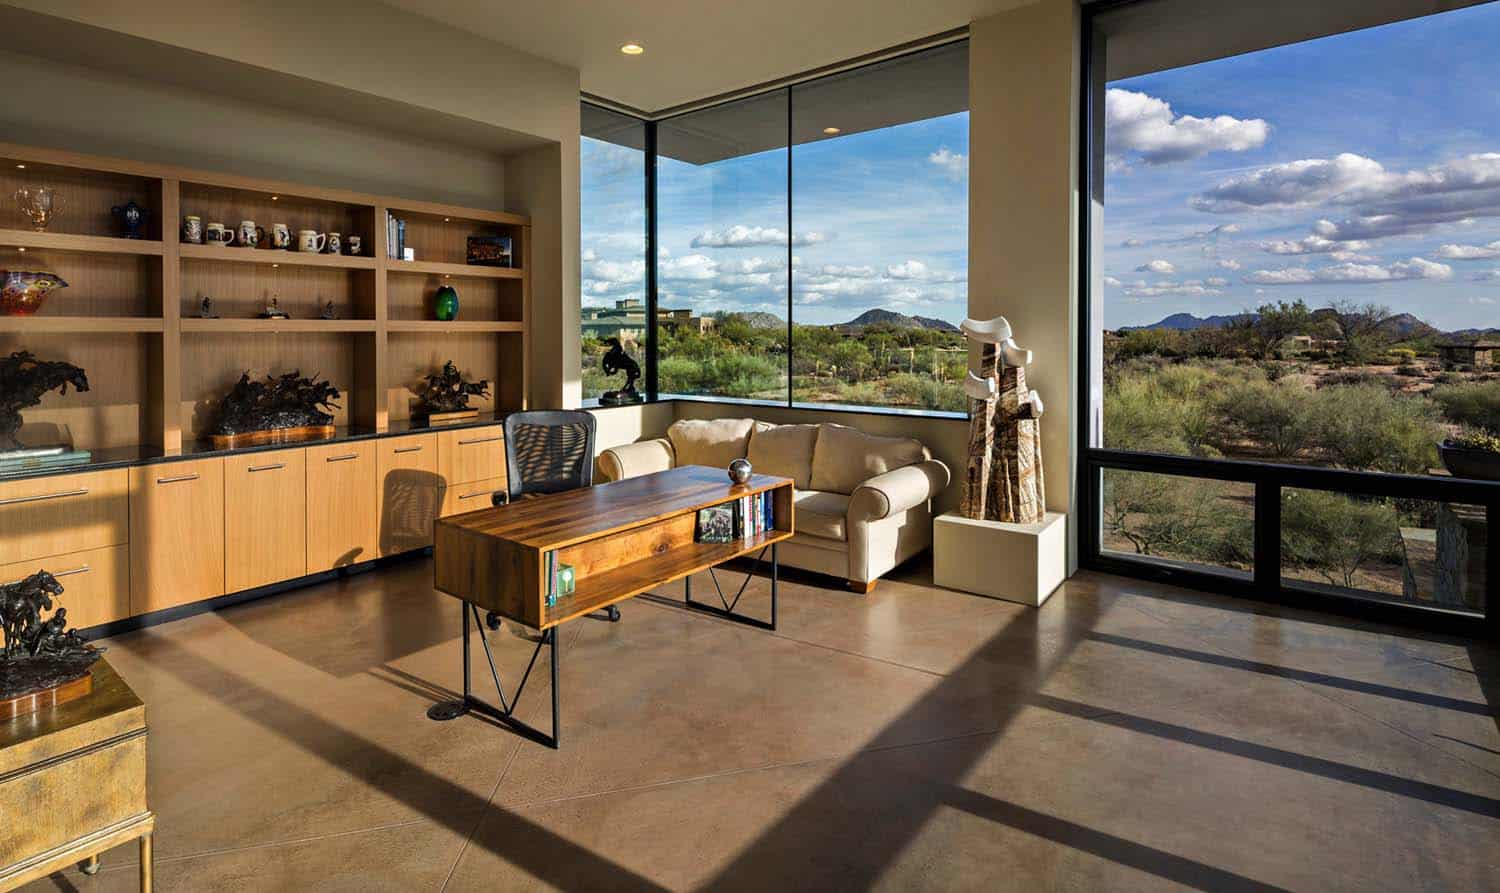 residence-southwestern-home-office